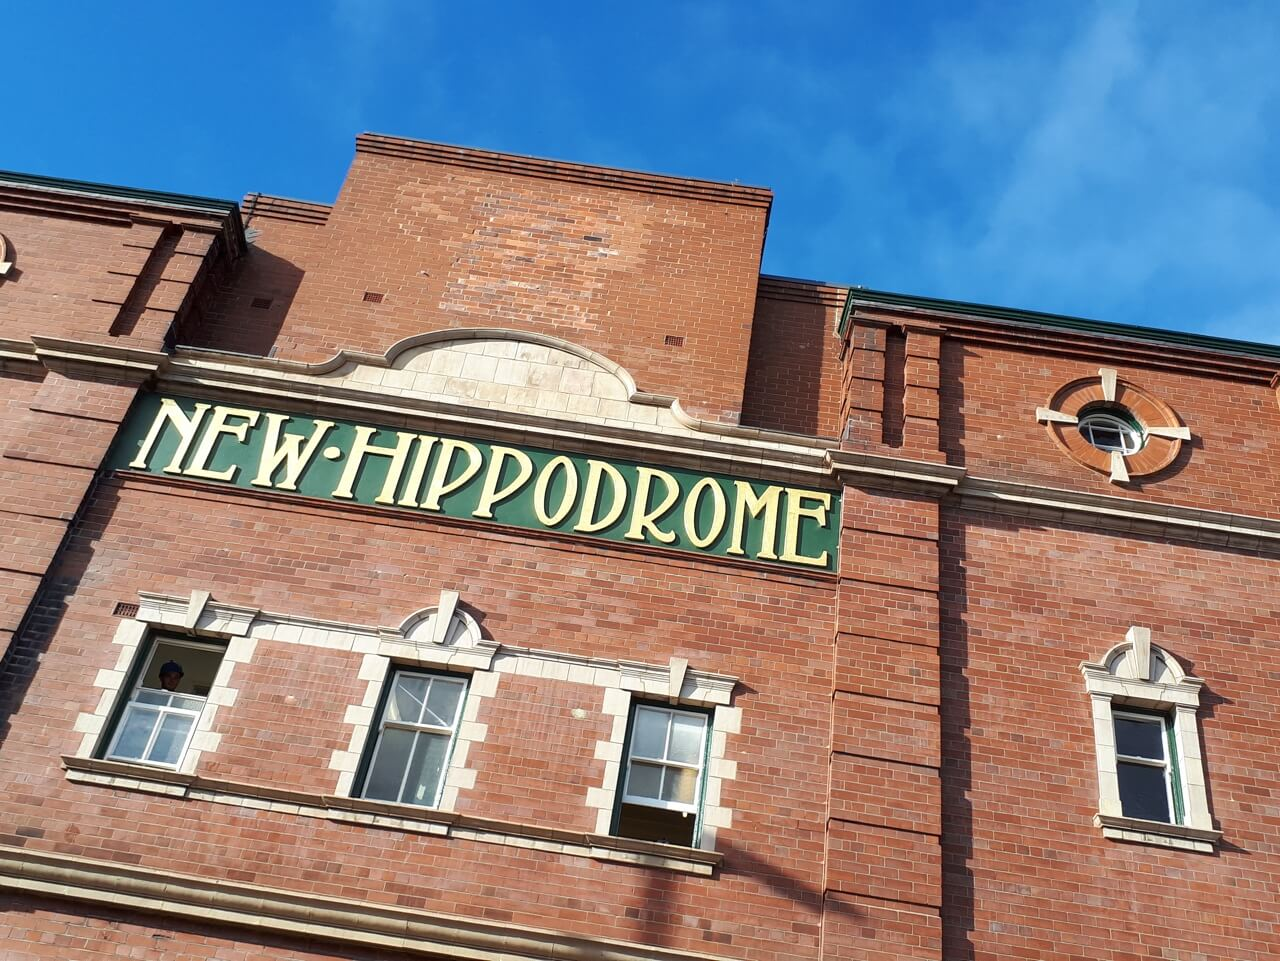 The original gilded external signage at Darlington Hippodrome